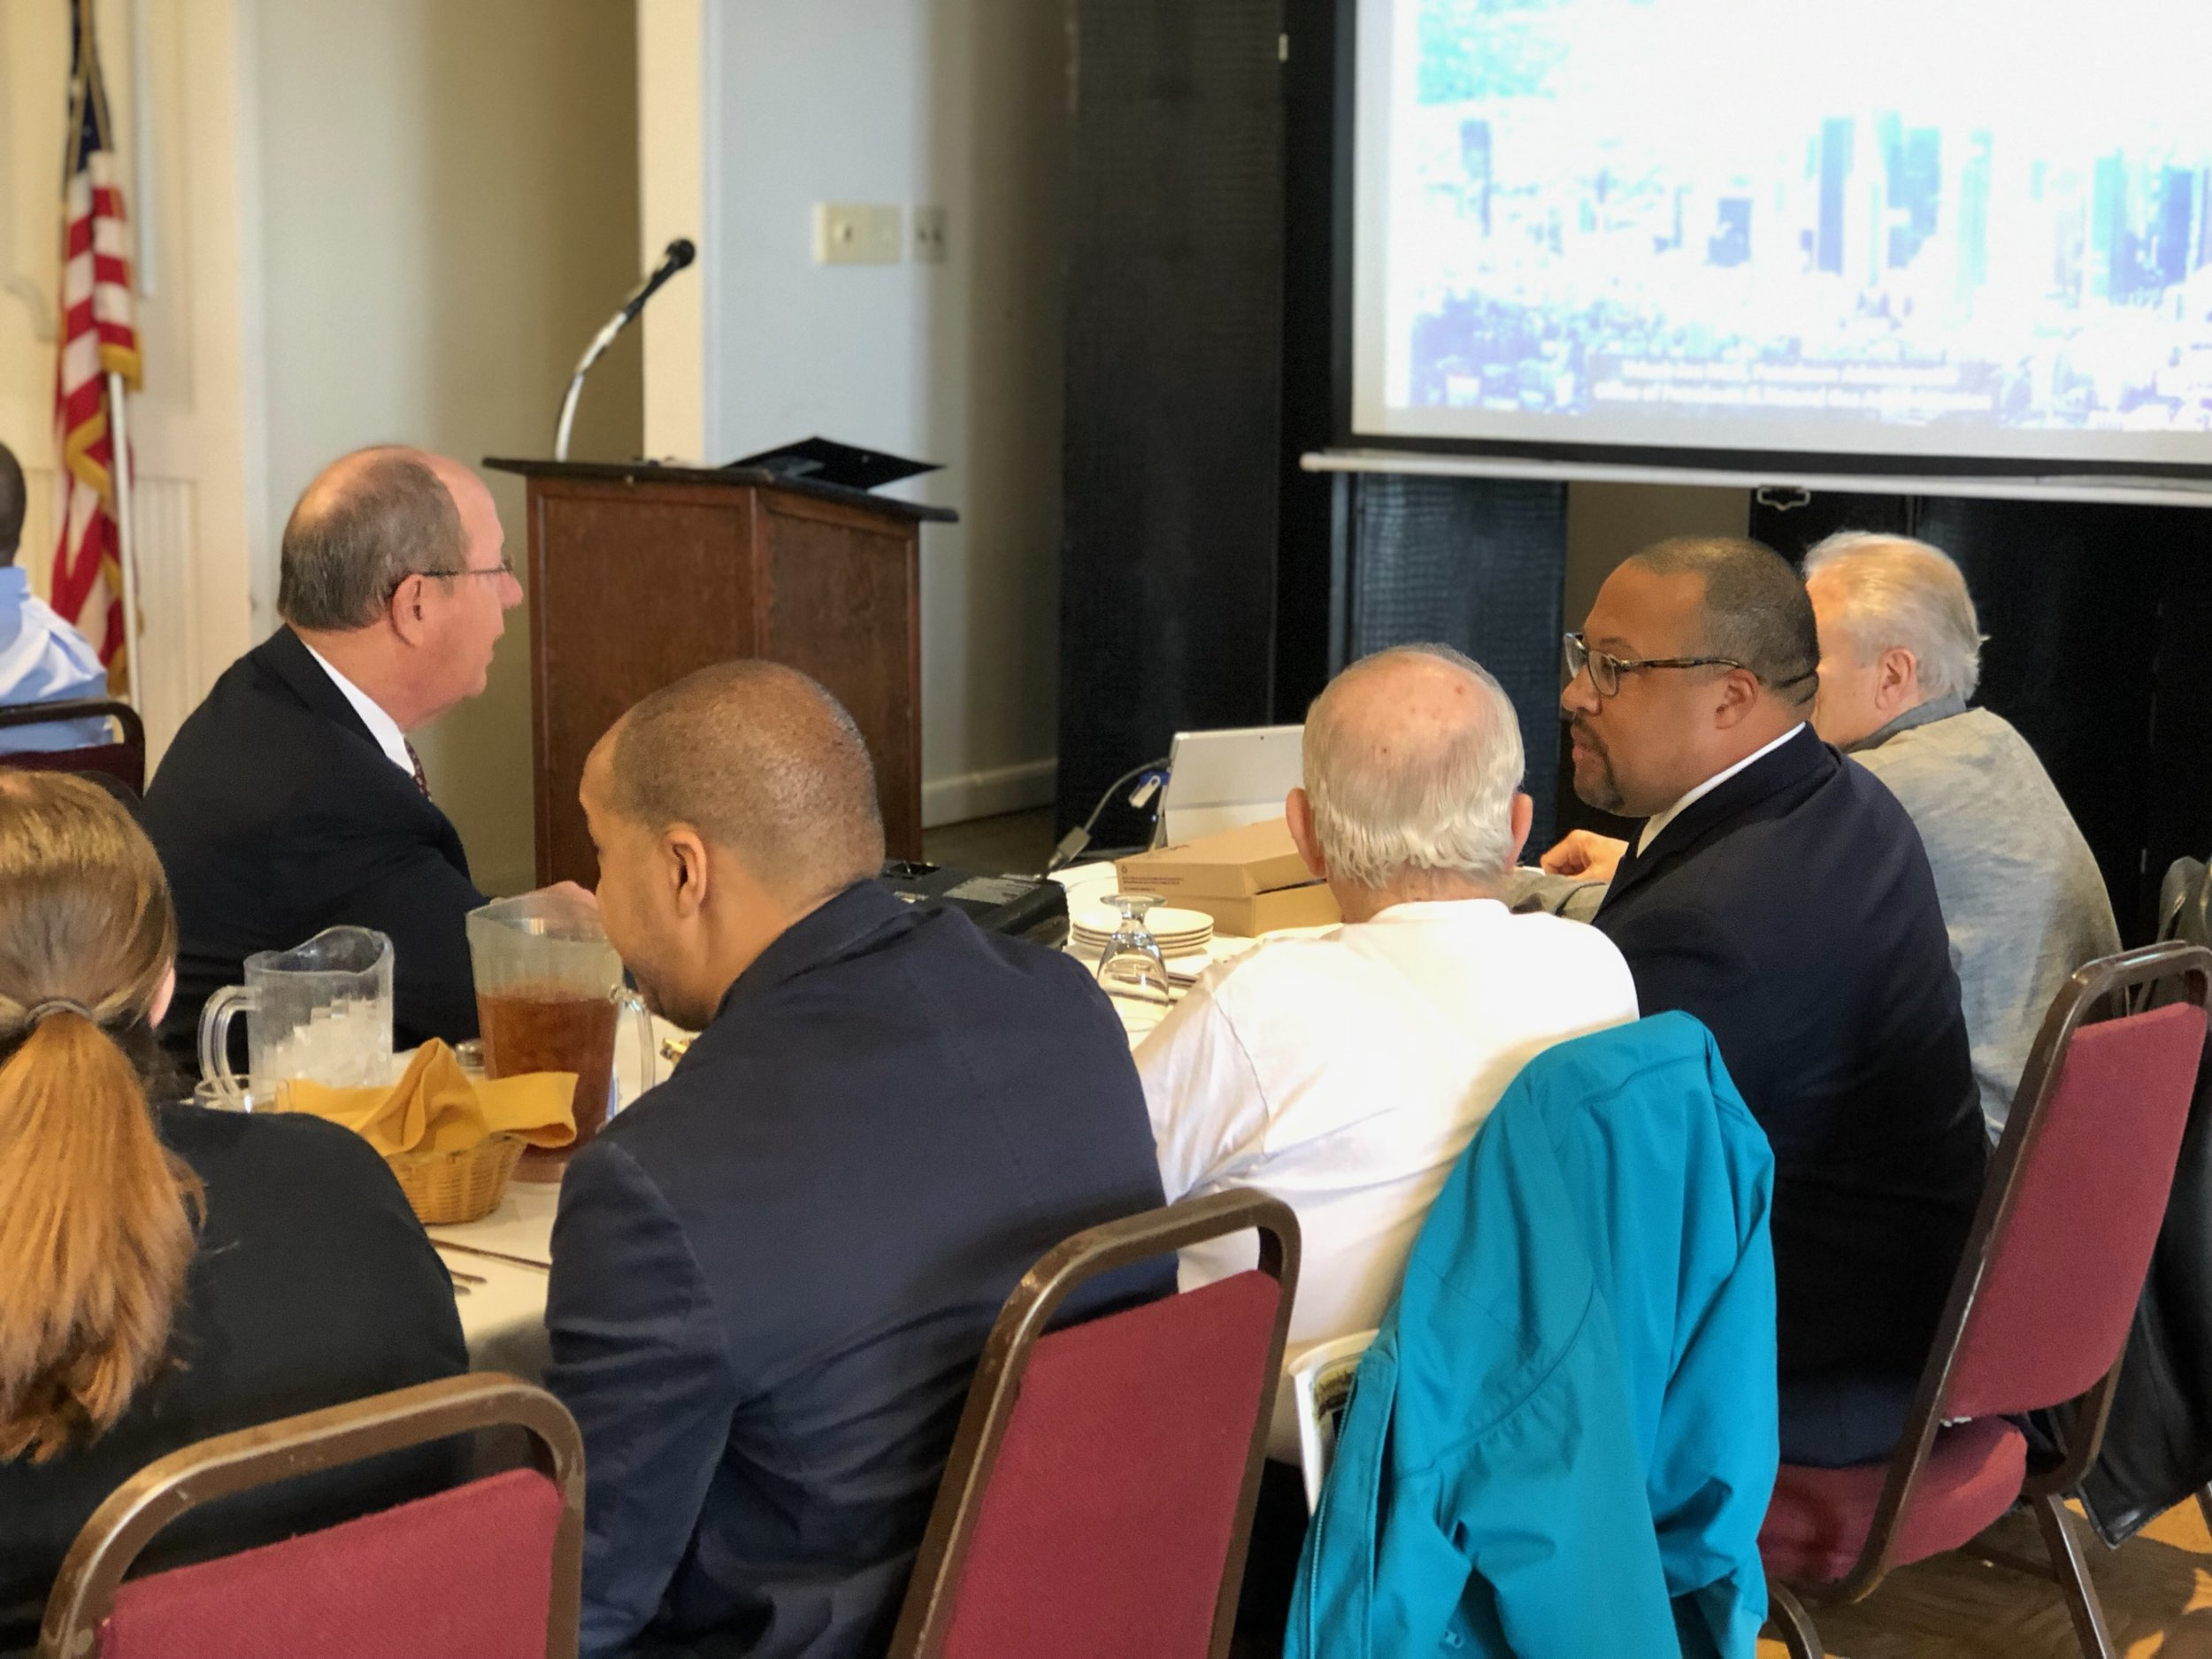 LAAPL Luncheon_3-21-2019_Photo 3.jpg